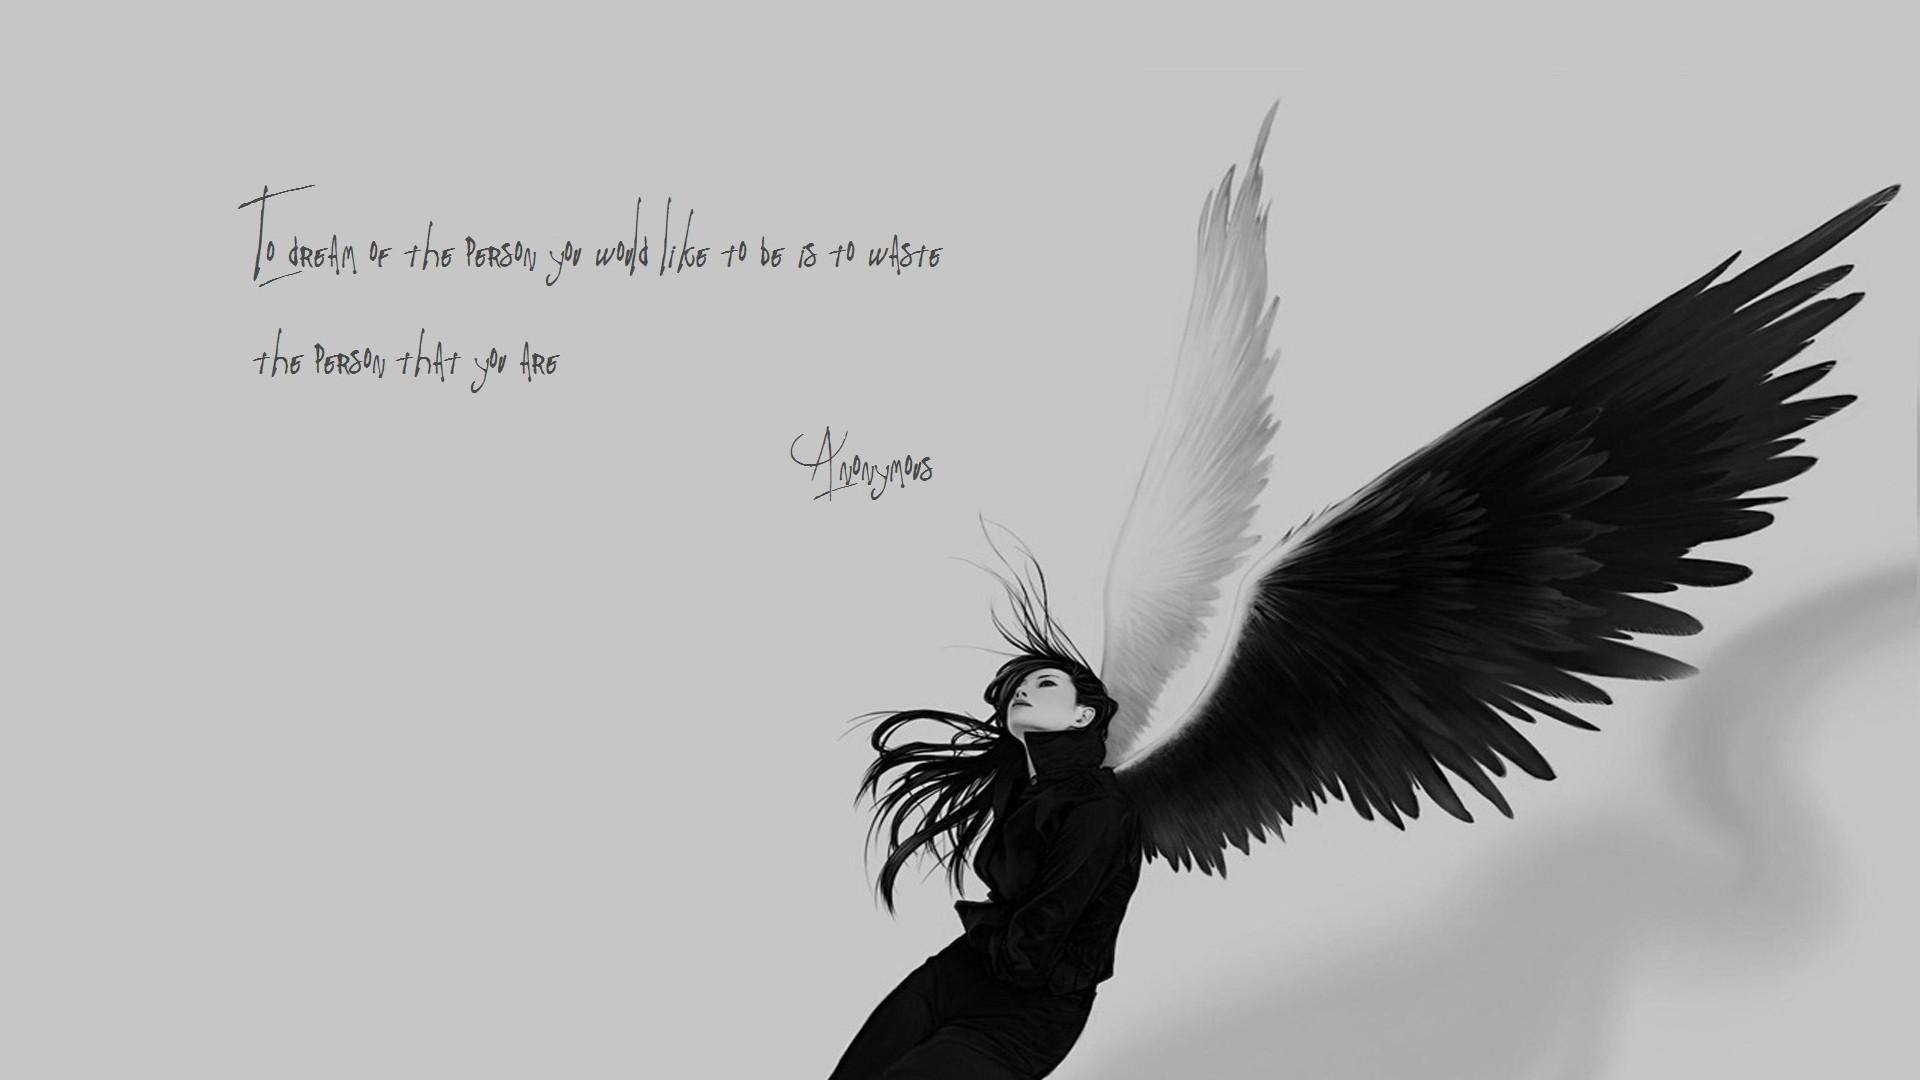 angels, wings, Anonymous, quotes, sad, monochrome :: Wallpapers